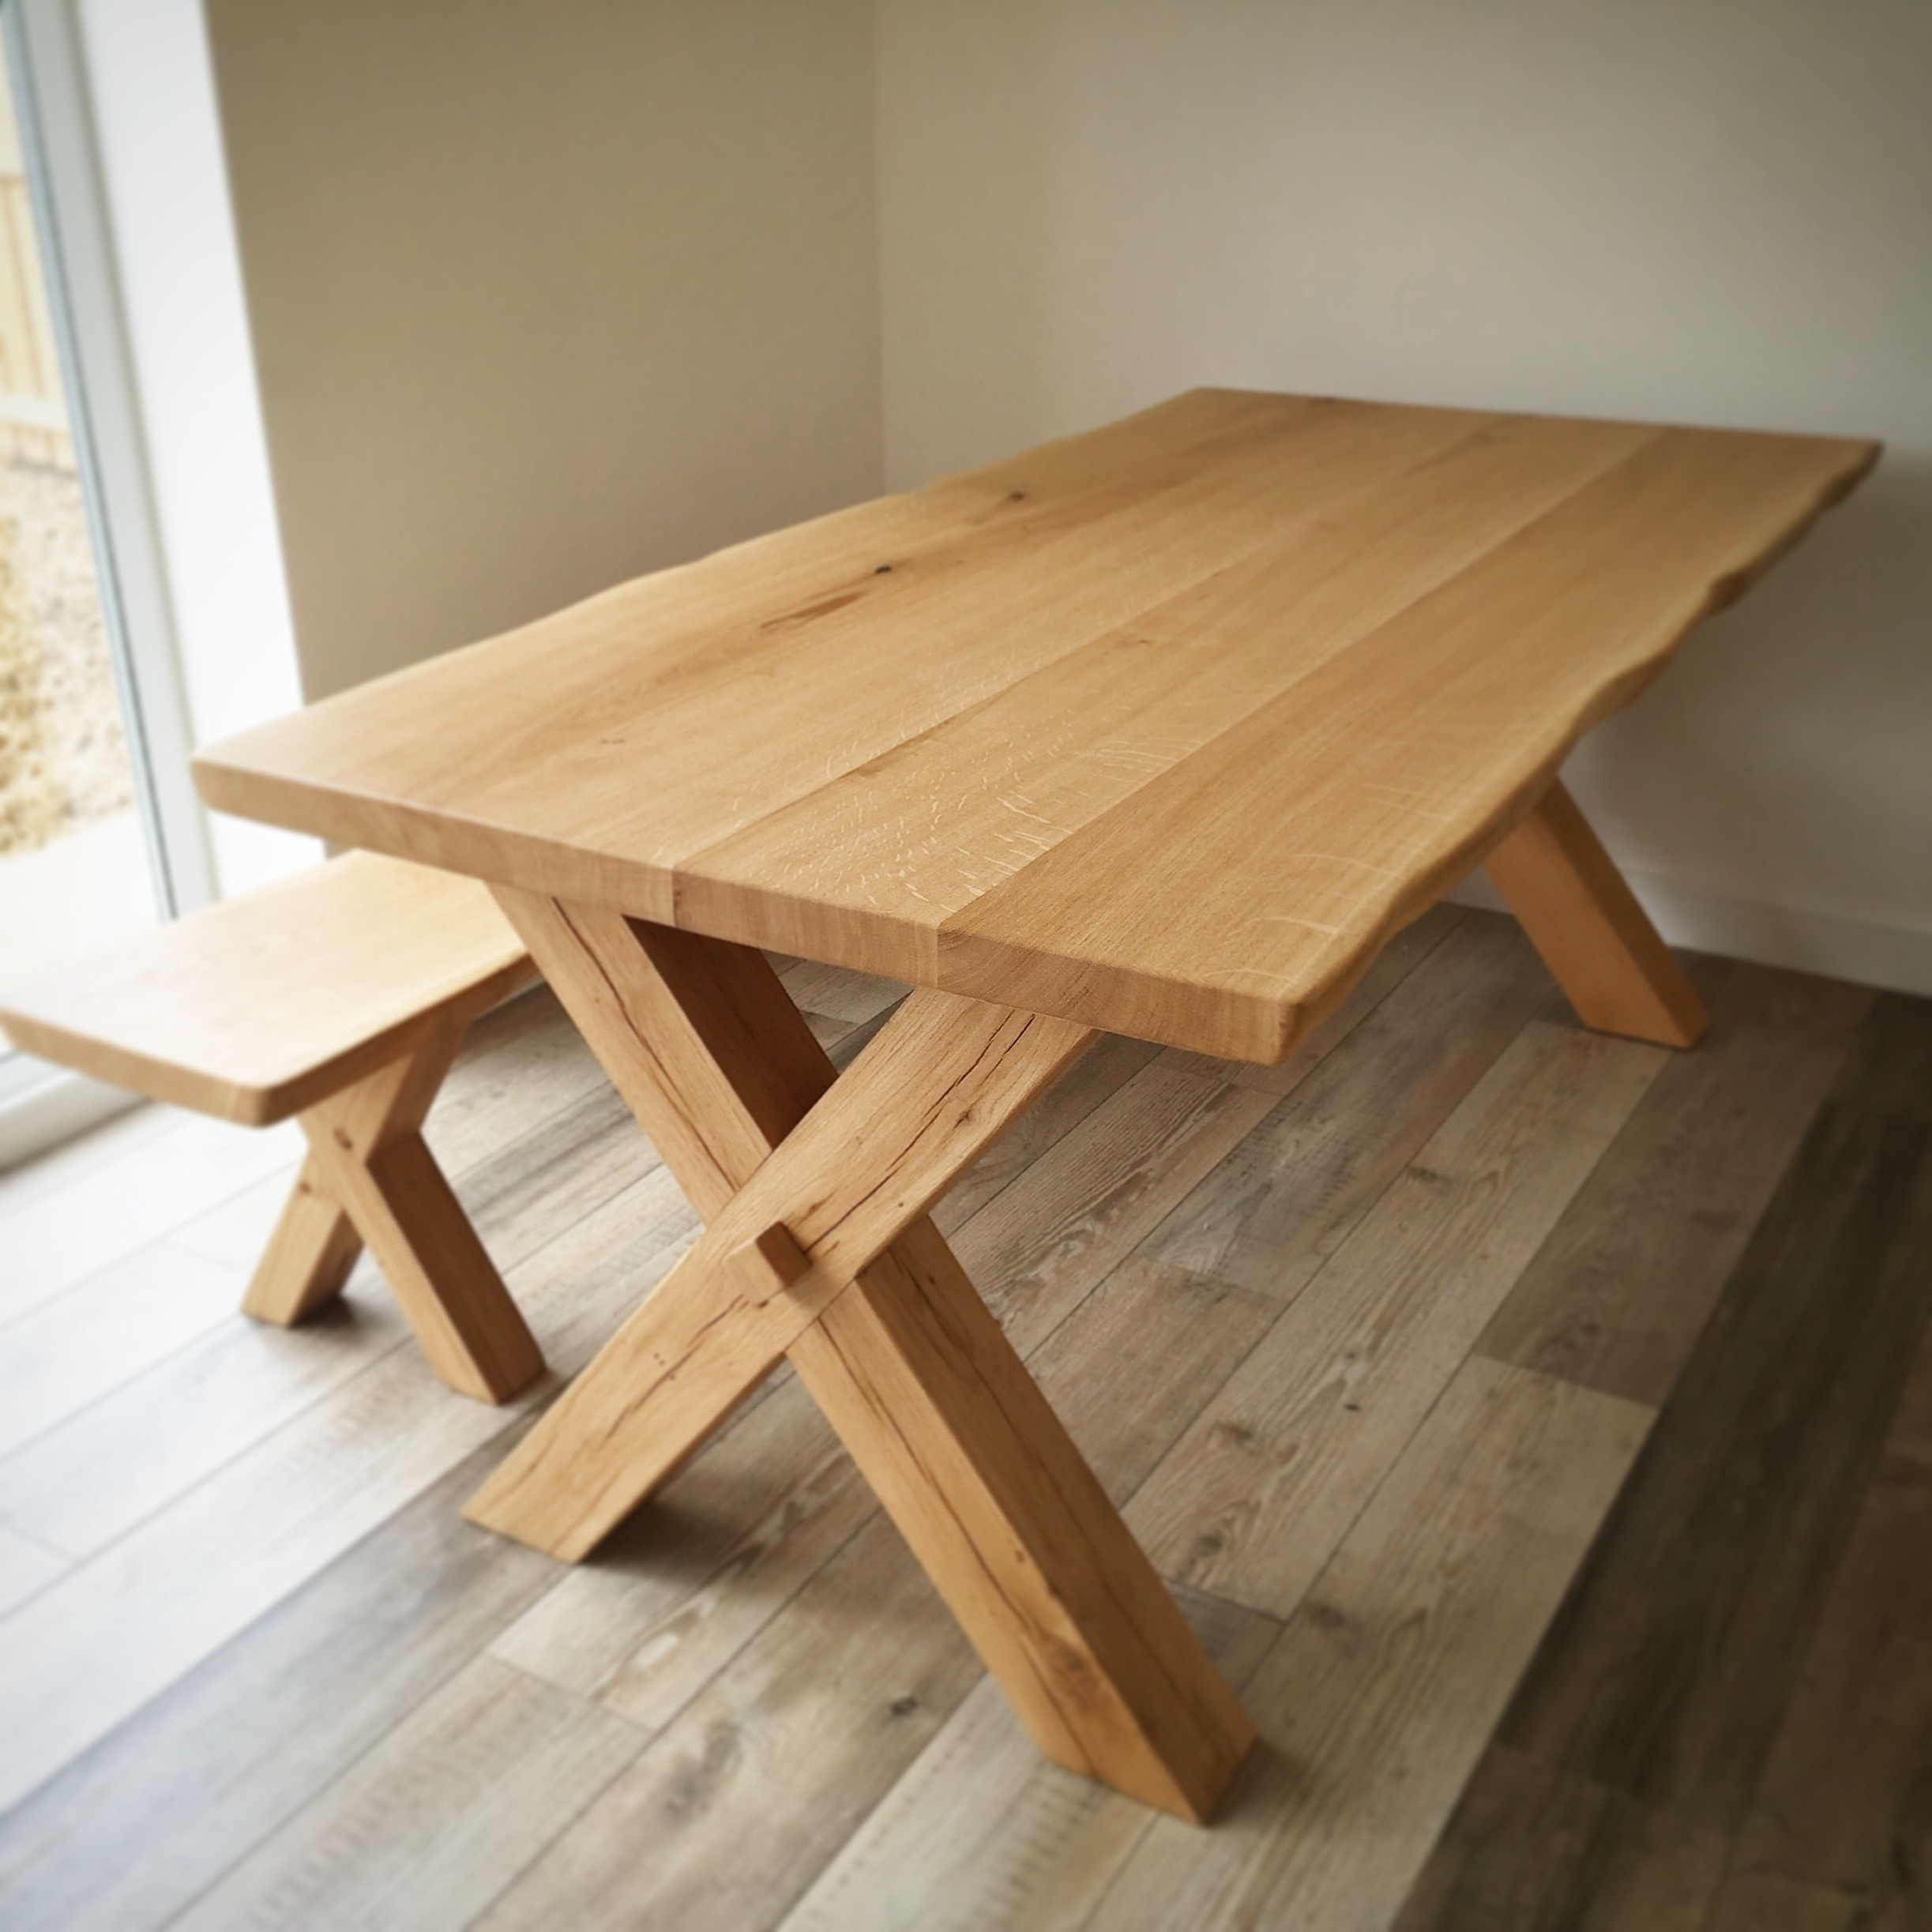 Popular Solid Oak Dining Table – Cross Leg Design – Handmade In The Uk (View 9 of 25)